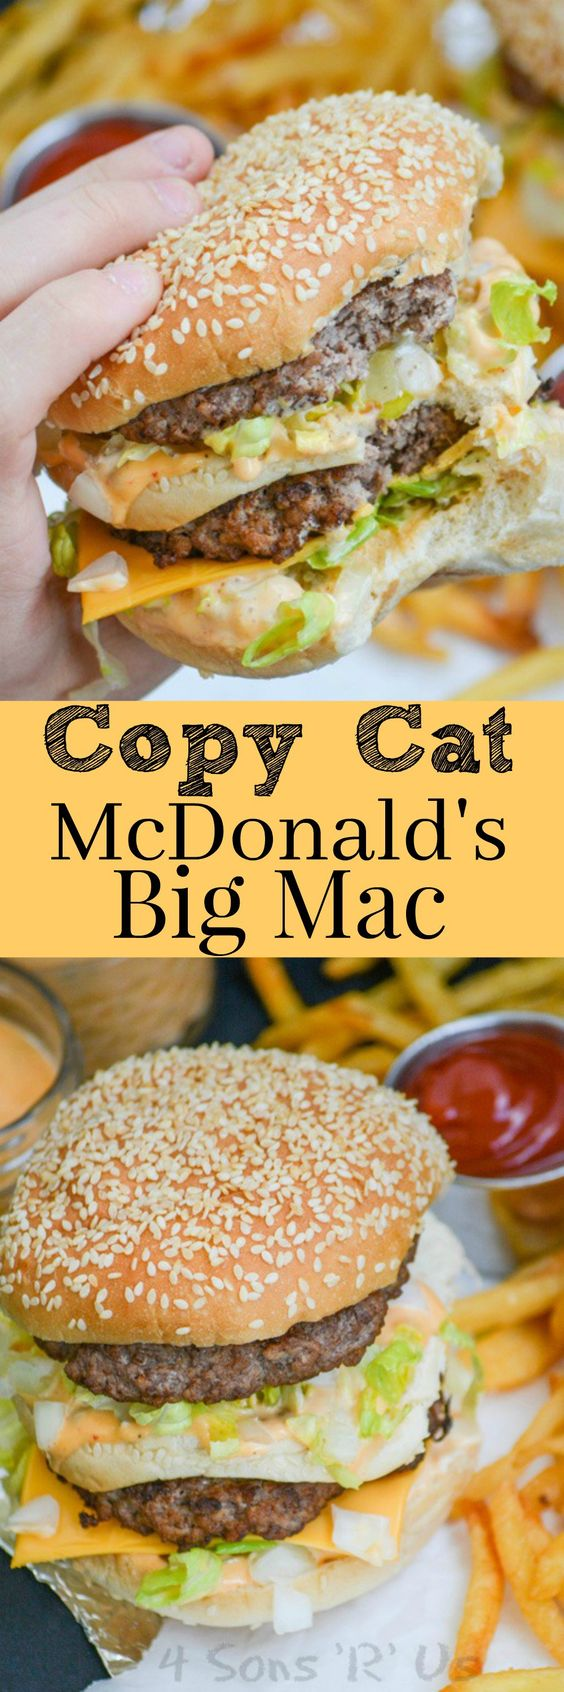 "Copycat McDonald's BIG MAC hamburger Recipe via 4 Sons ""R"" Us ""Get an authentic taste of your favorite fast food burger with this Copy Cat McDonald's Big Mac. It's got everything you crave about the classic double decker sandwich, including the 'secret sauce', that's a spot on replica. Serve it with an ice cold coke, and crispy french fries for an authentic lunch or dinner."" #burgers #gourmetburgers #burgerrecipes #cookouts #grilling #barbecue #hamburgers #fathersday #fathersdayfood #bbq #partyfood #tailgating #superbowlfood #superbowl #summerfood #easylunches #easydinners #easysuppers"